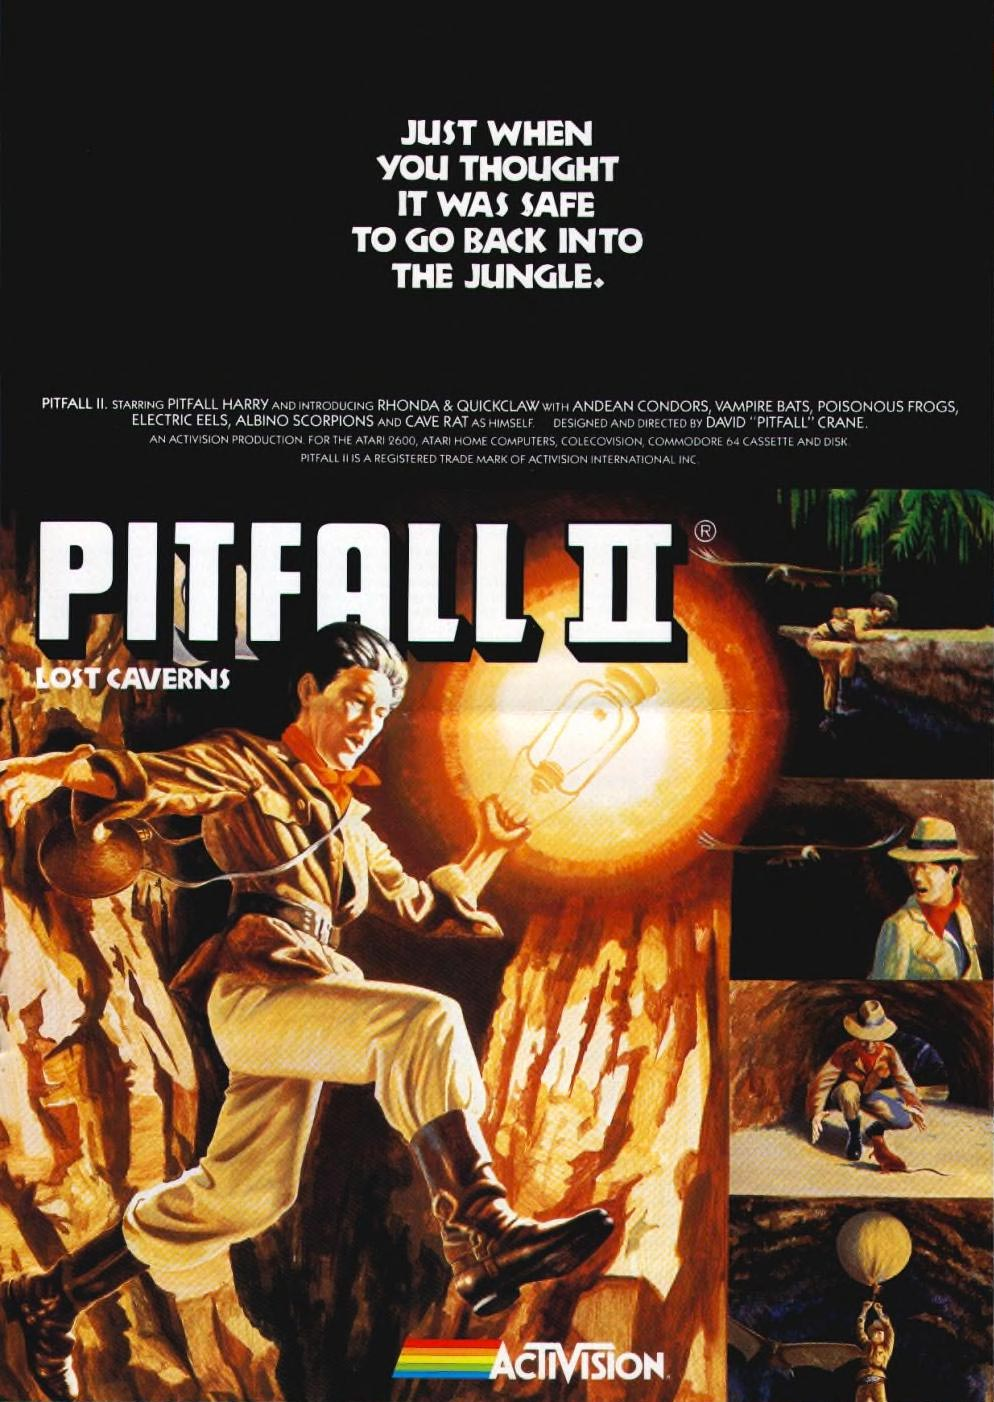 Pitfall II: Lost Caverns, an Activision game for video game consoles and home computers